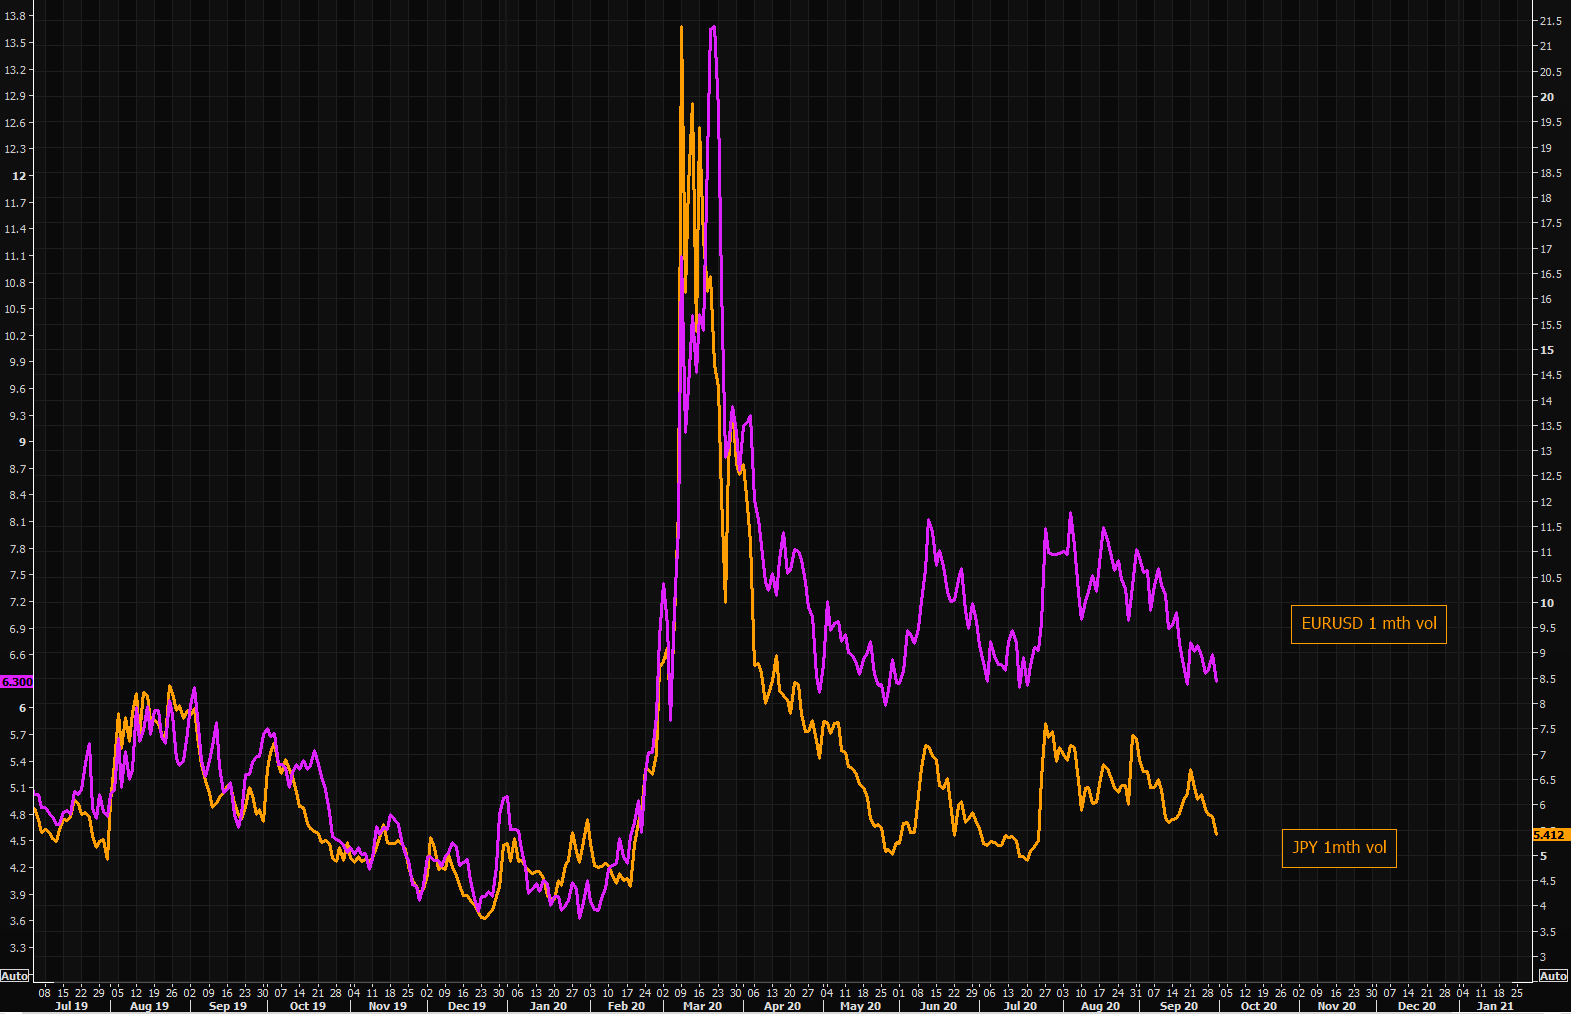 Big FX vols at or taking new recent lows